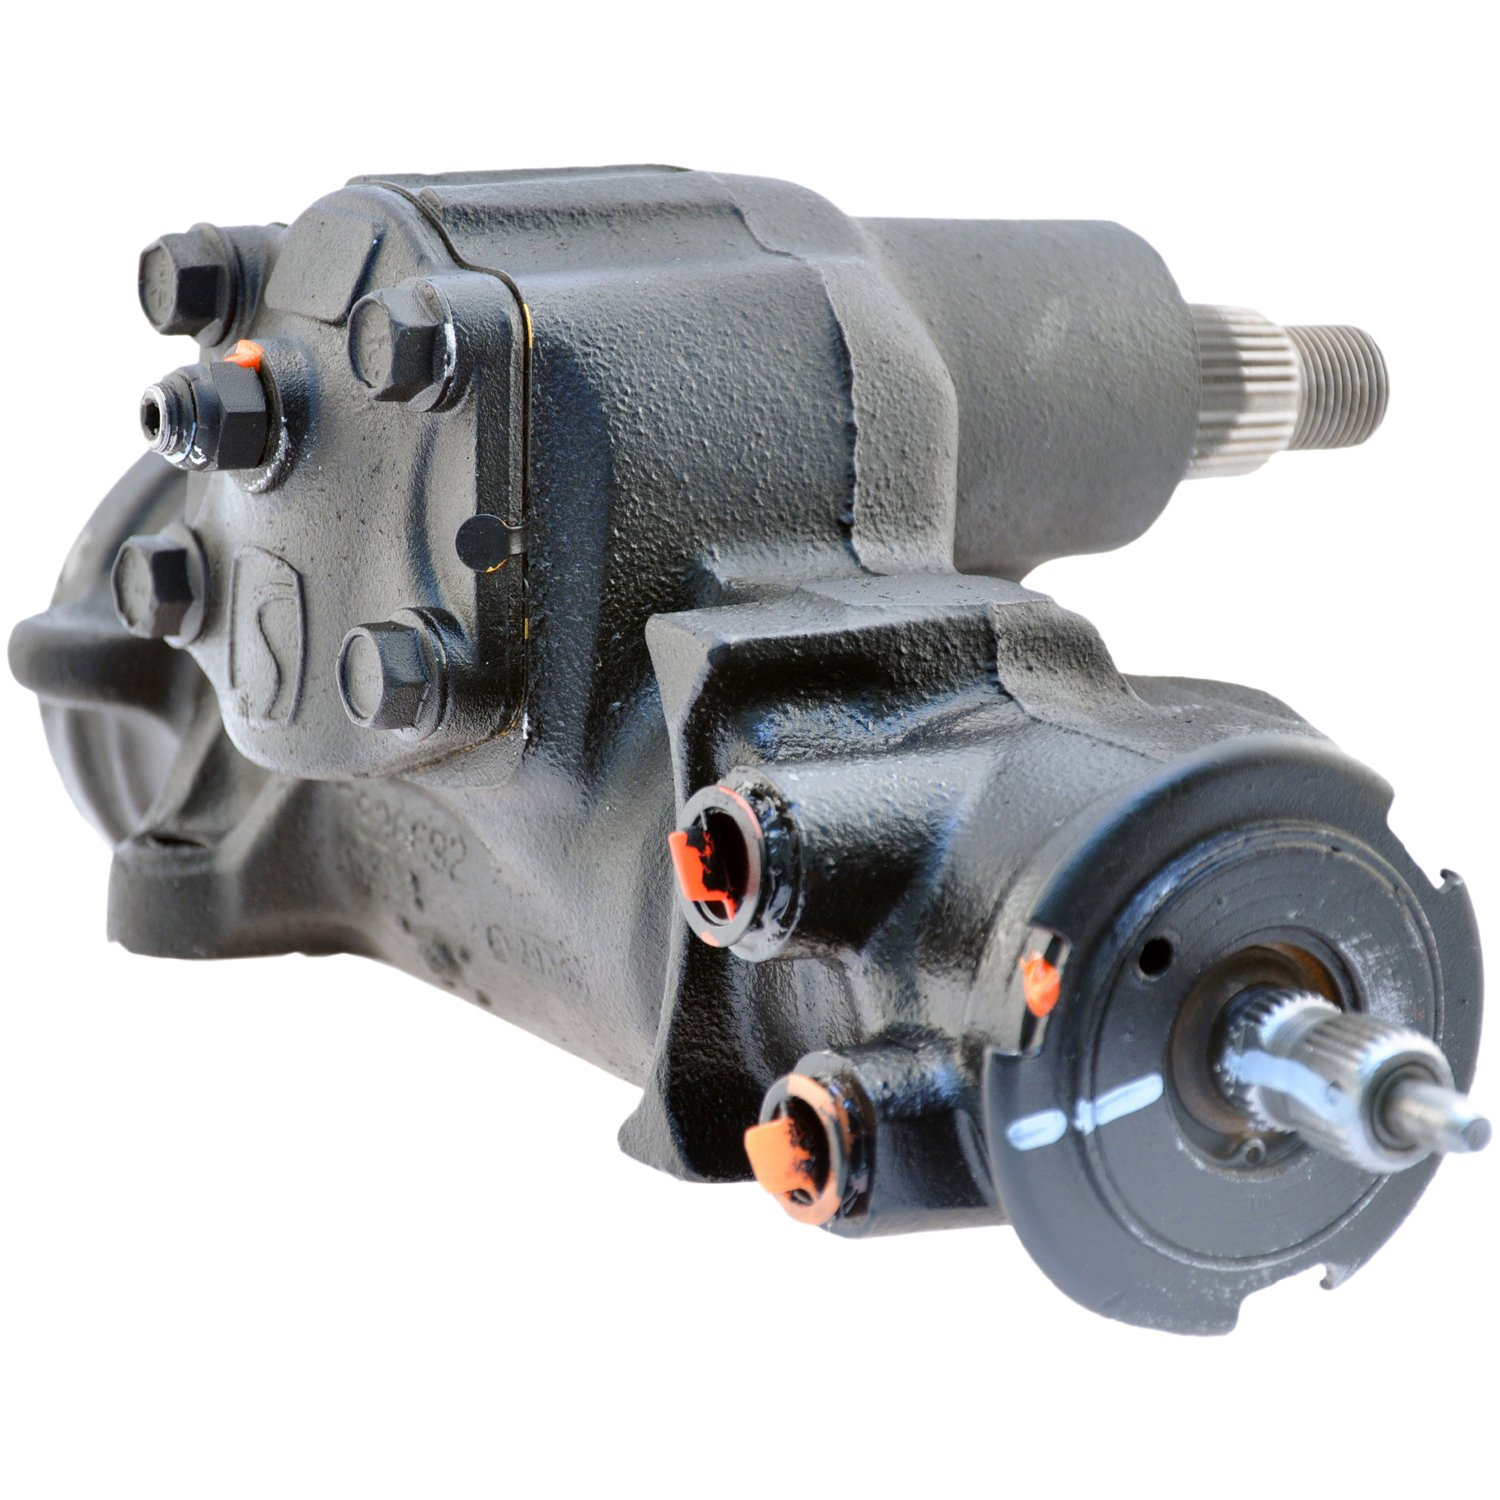 Remanufactured ACDelco 36G0098 Professional Steering Gear without Pitman Arm